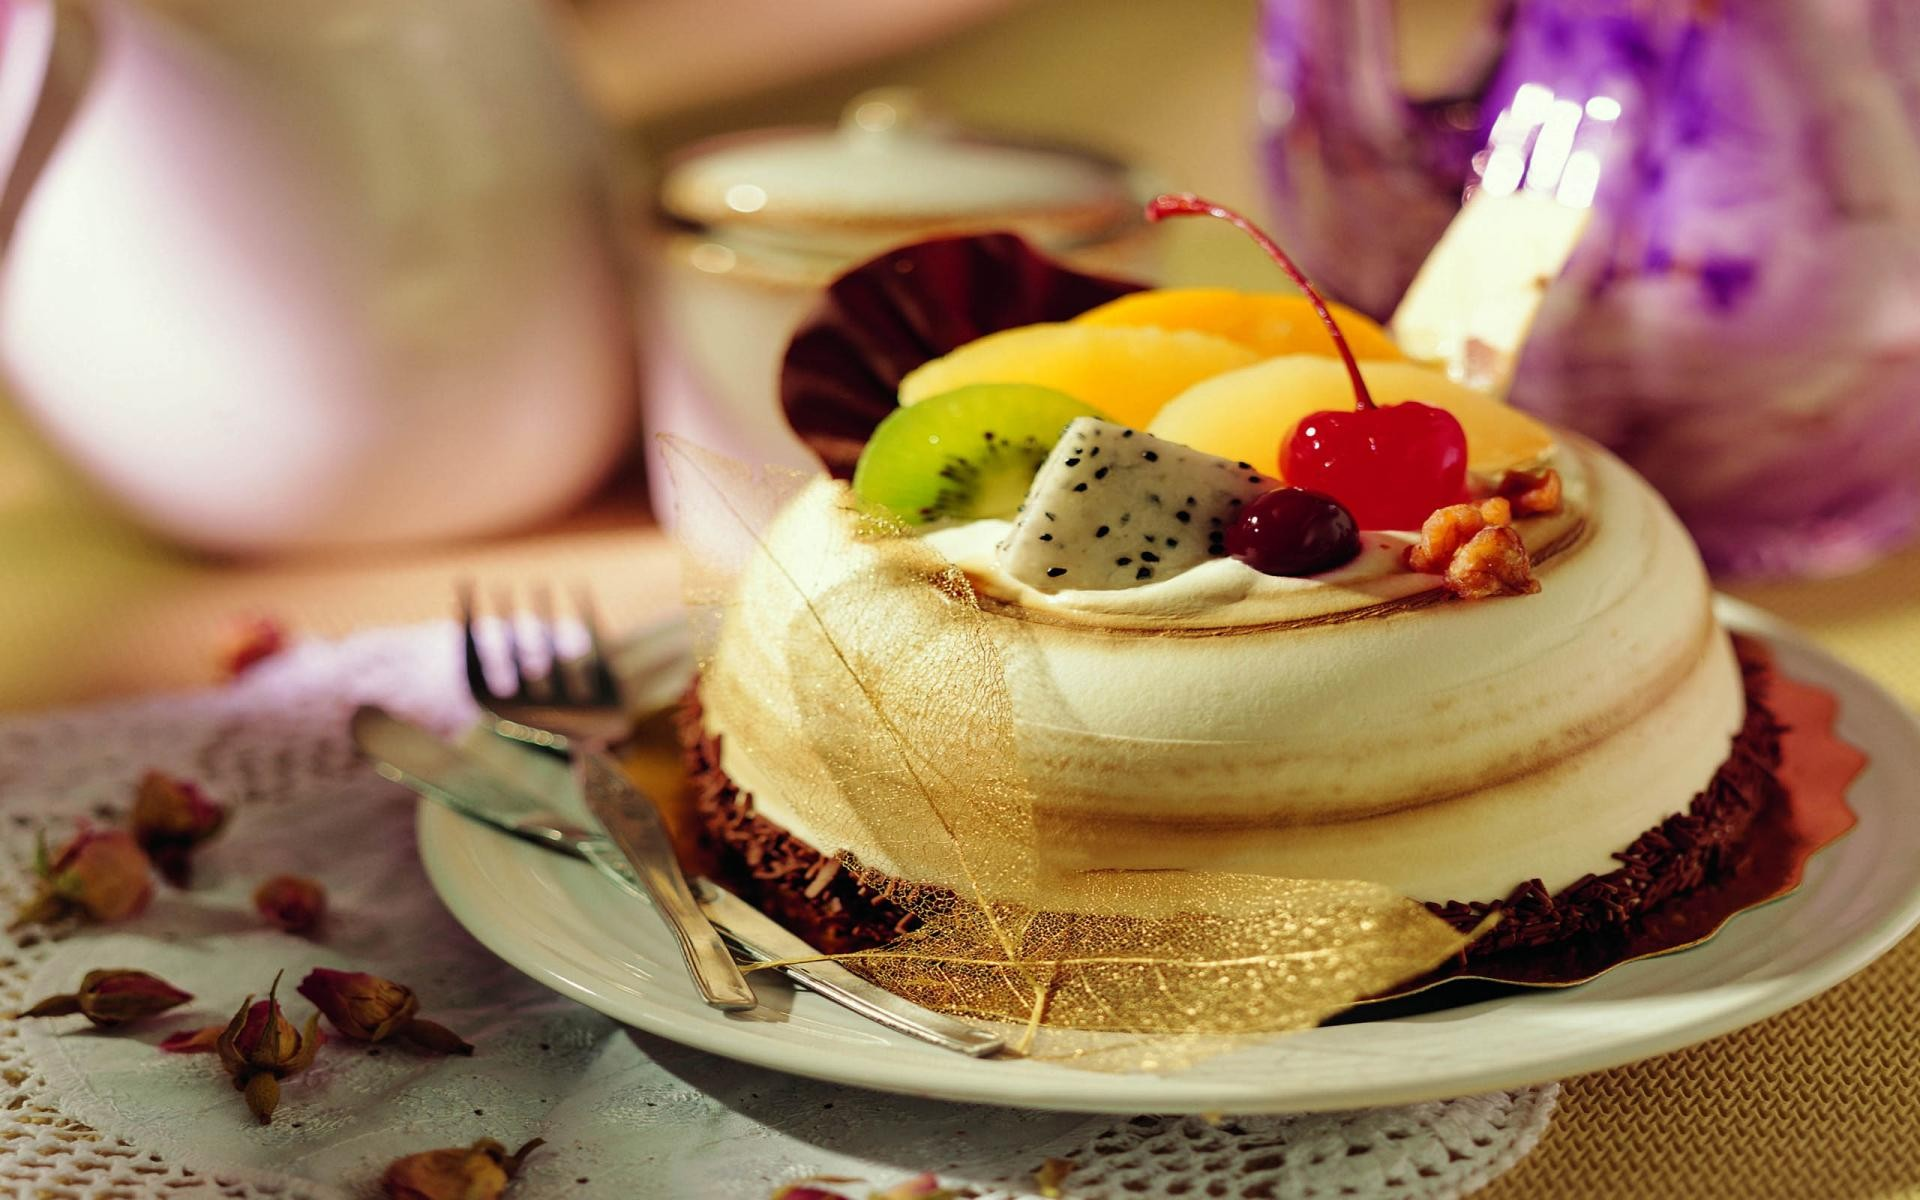 Cake Images In Hd : Food desserts cakes wallpaper 1920x1200 56955 ...